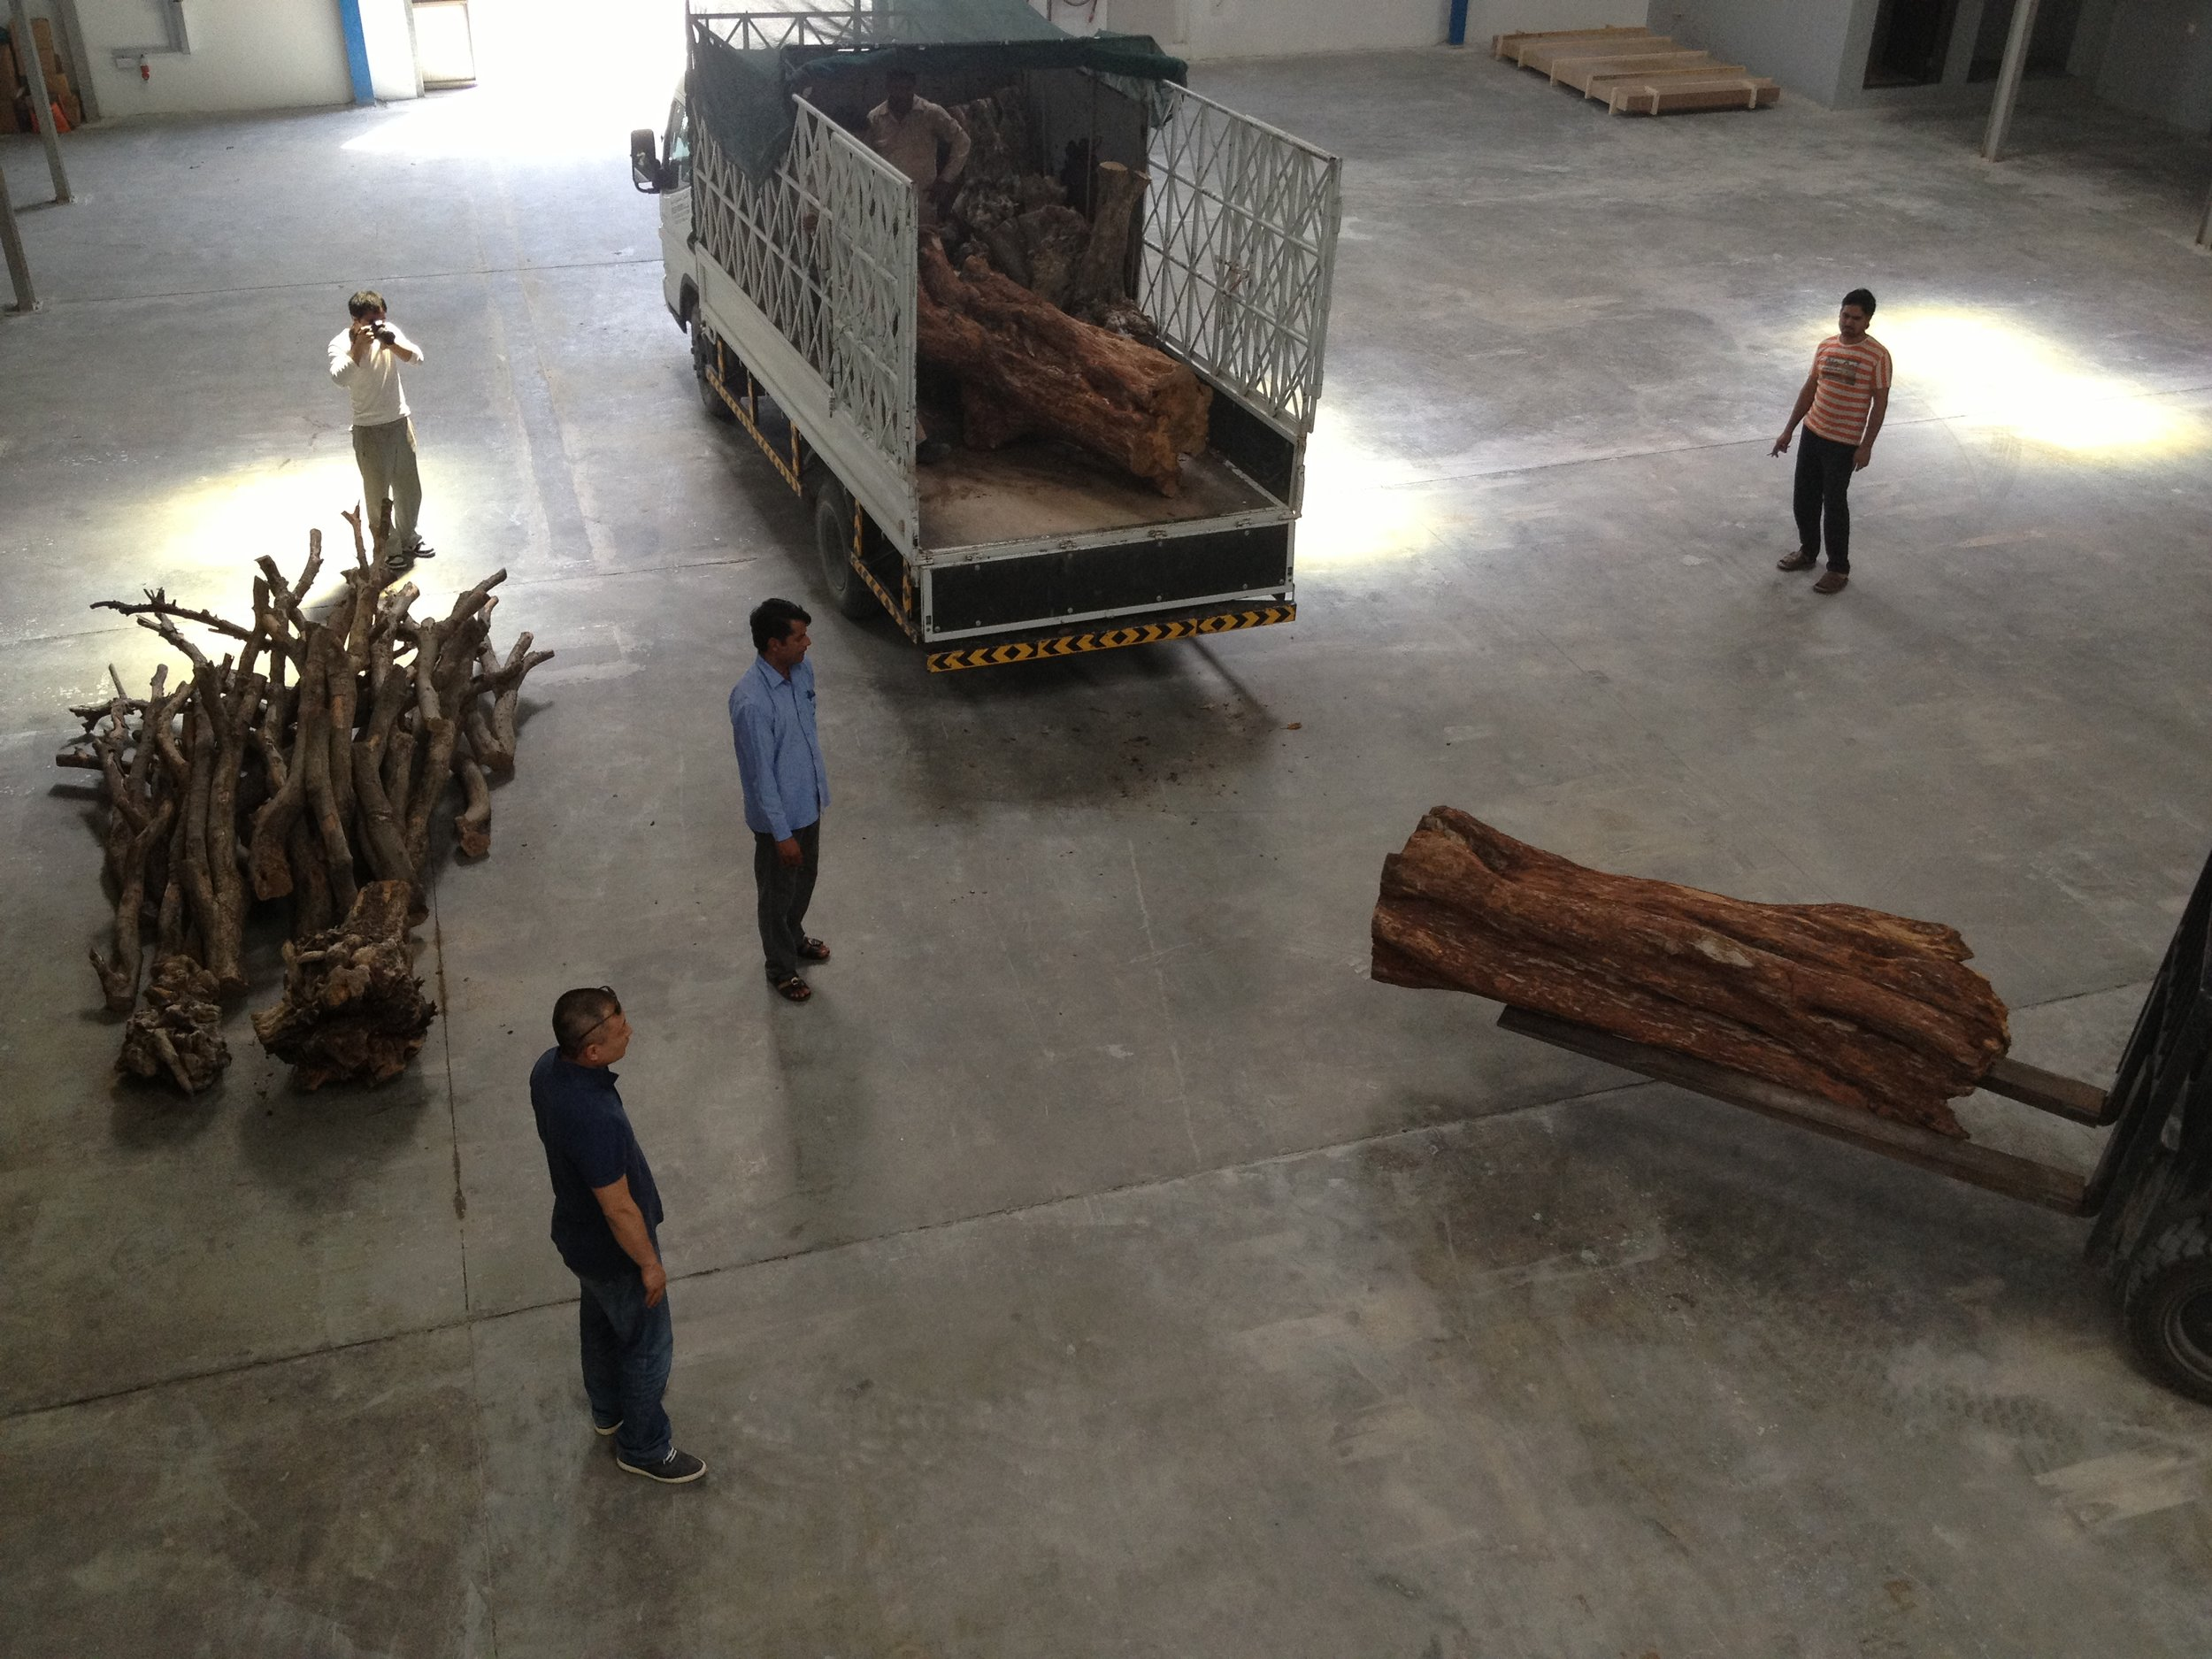 Tree trunks and branches arrive at the studio